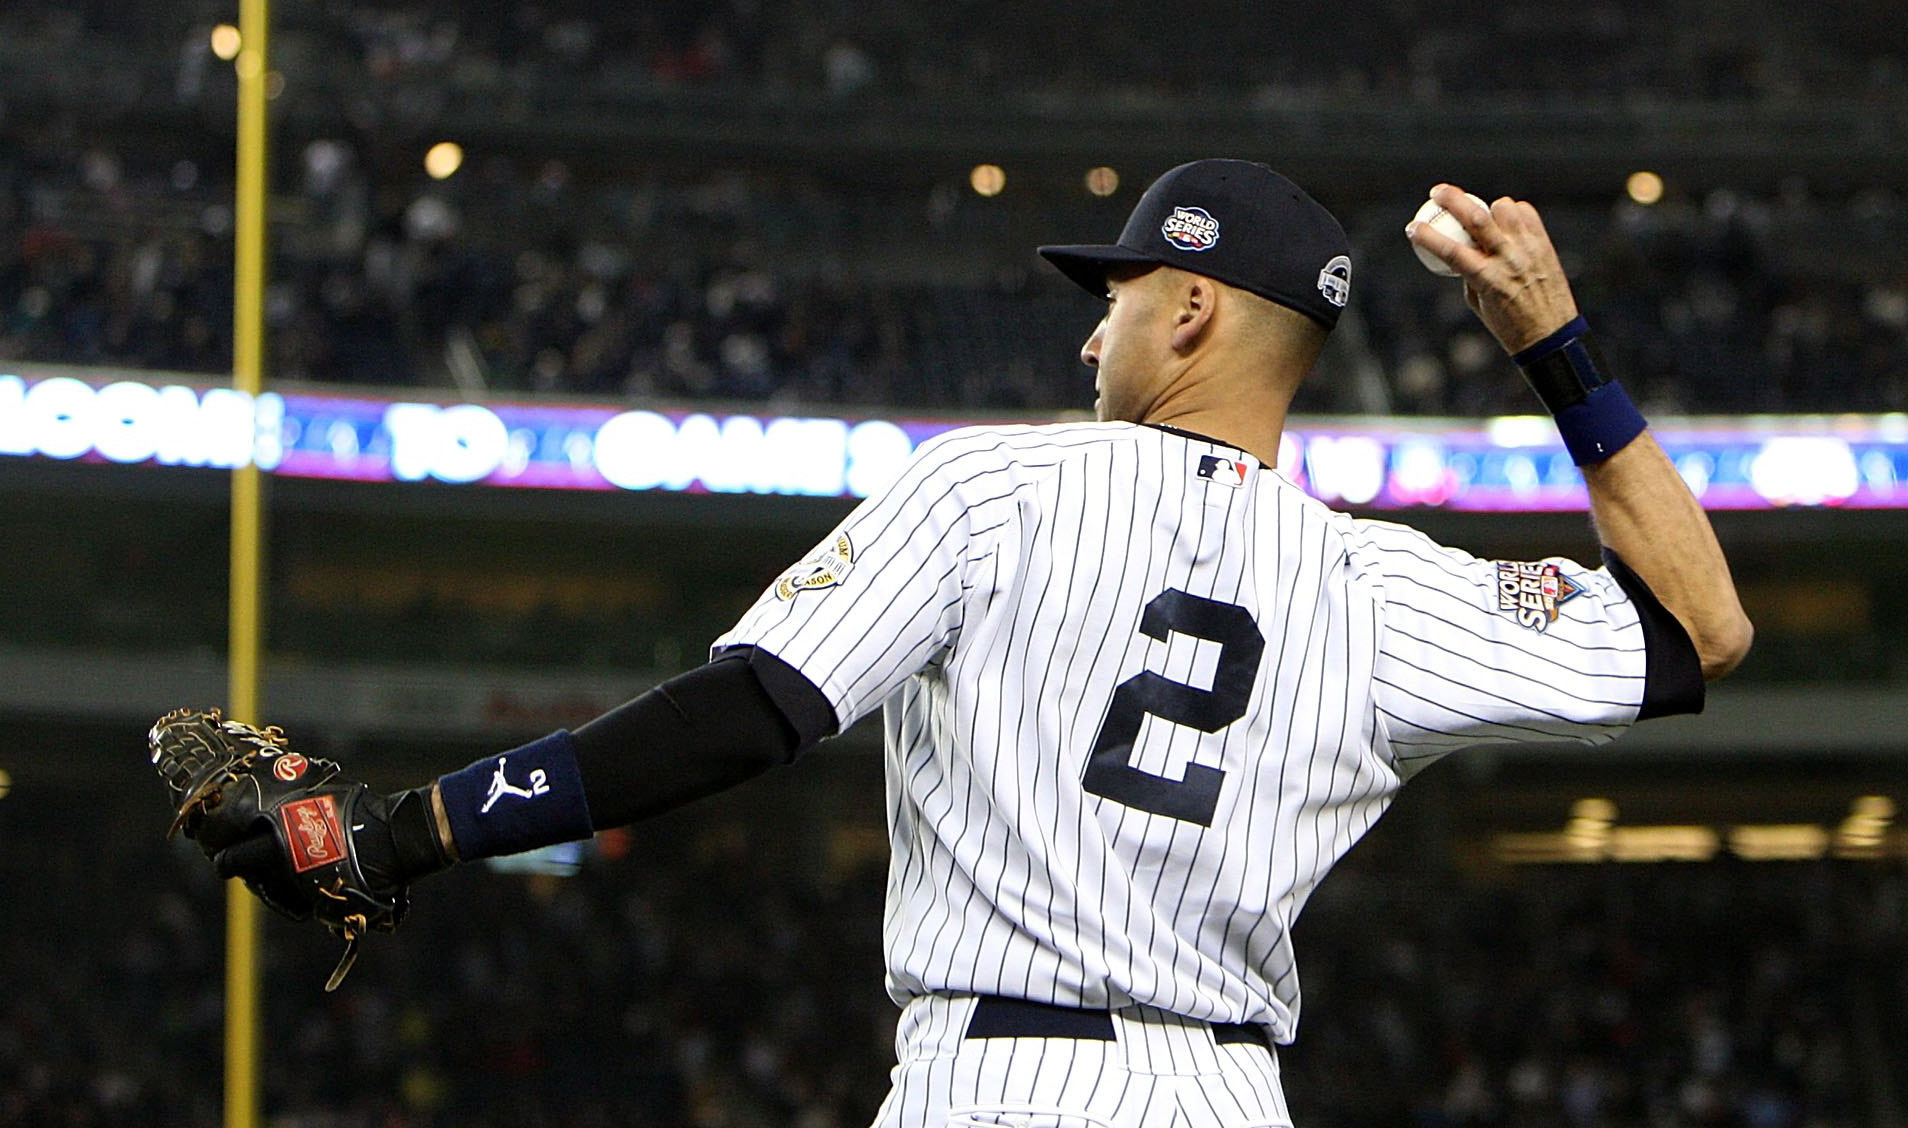 Jeter_World_Series_Patches.jpg